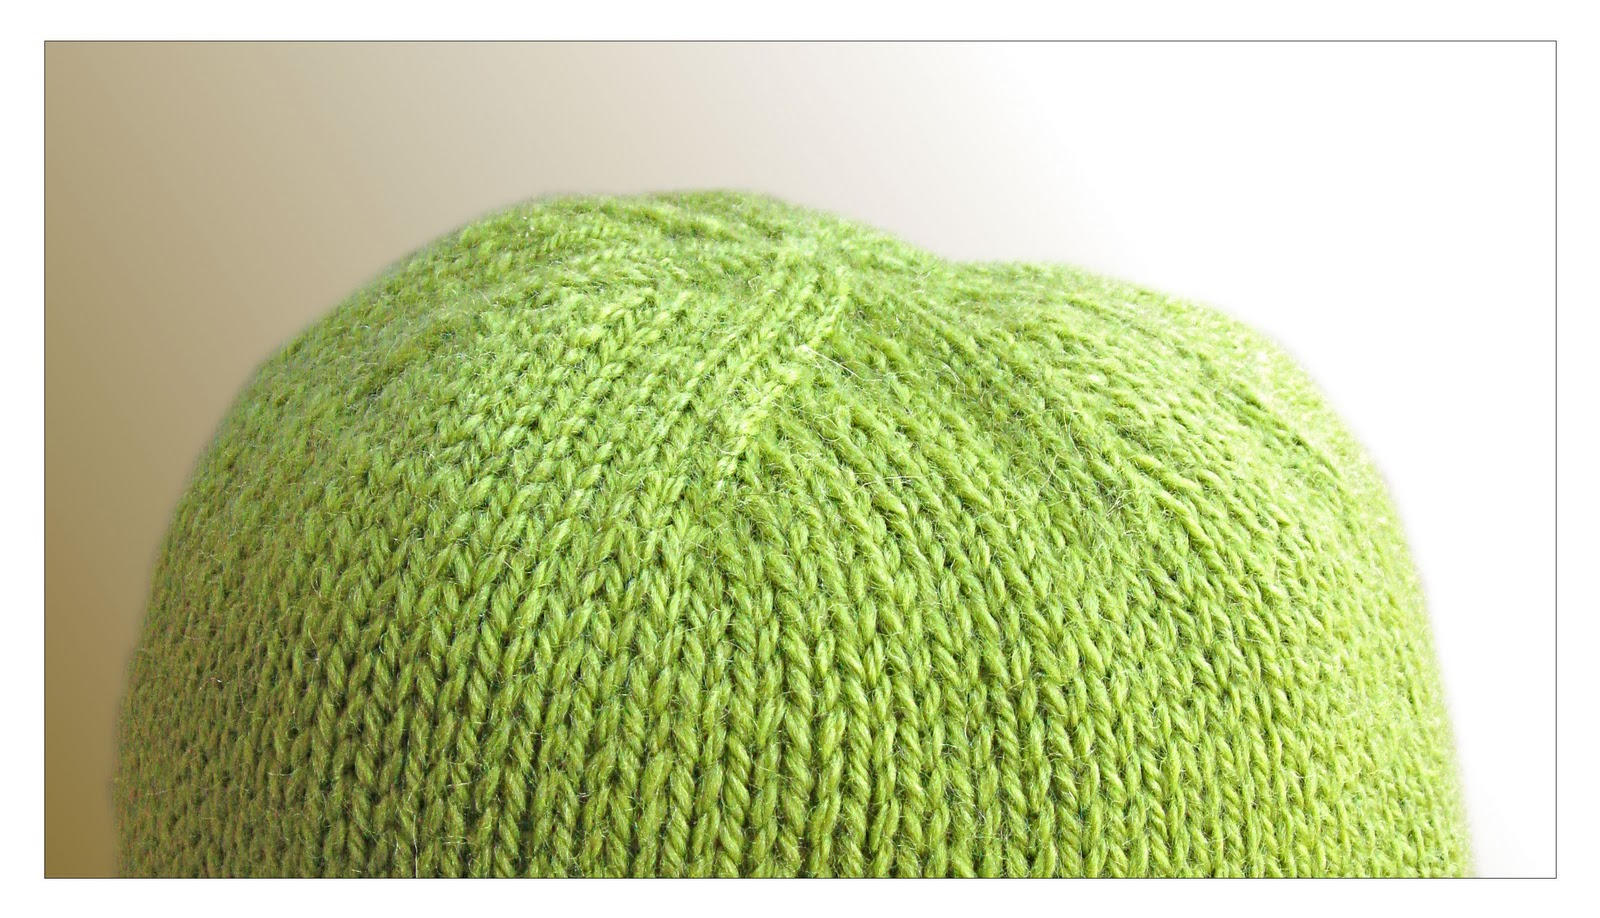 Knitting Decrease Stitches Evenly : TECHknitting: Evenly spacing increases or decreases on an uneven stitch count